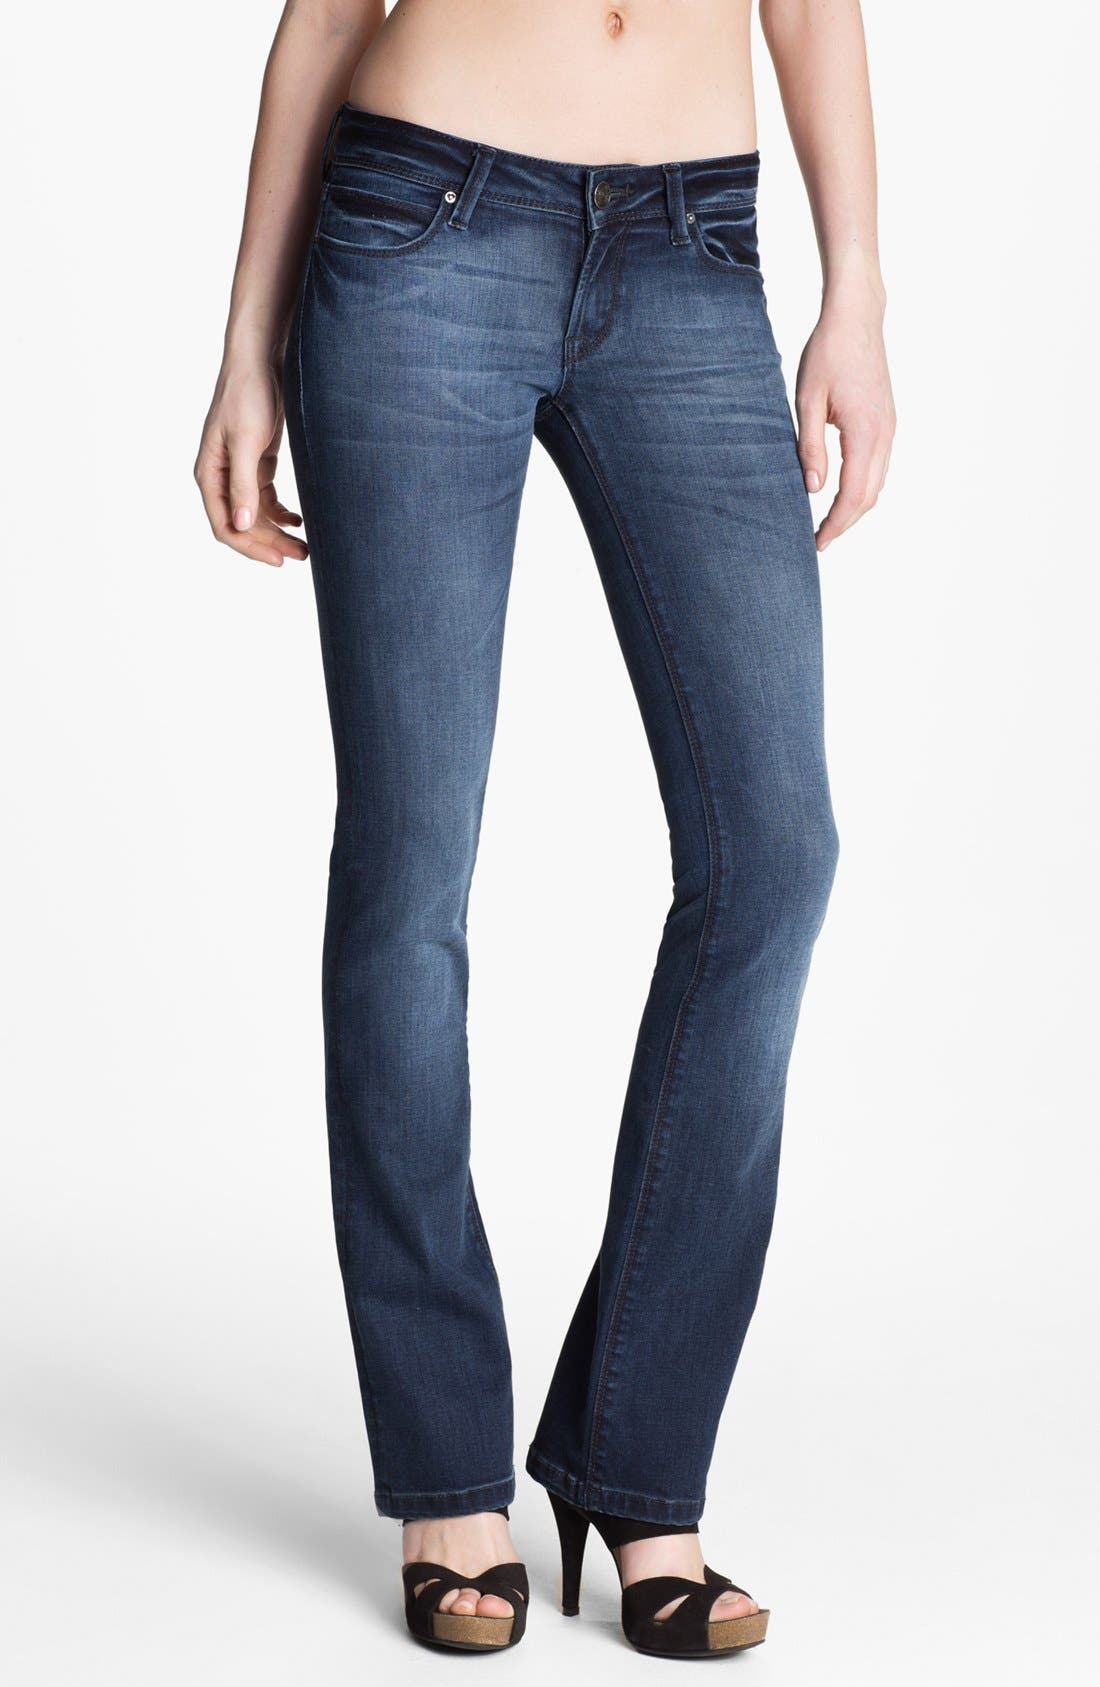 Alternate Image 1 Selected - DL1961 'Cindy Bell' Slim Bootcut Jeans (Stanton)